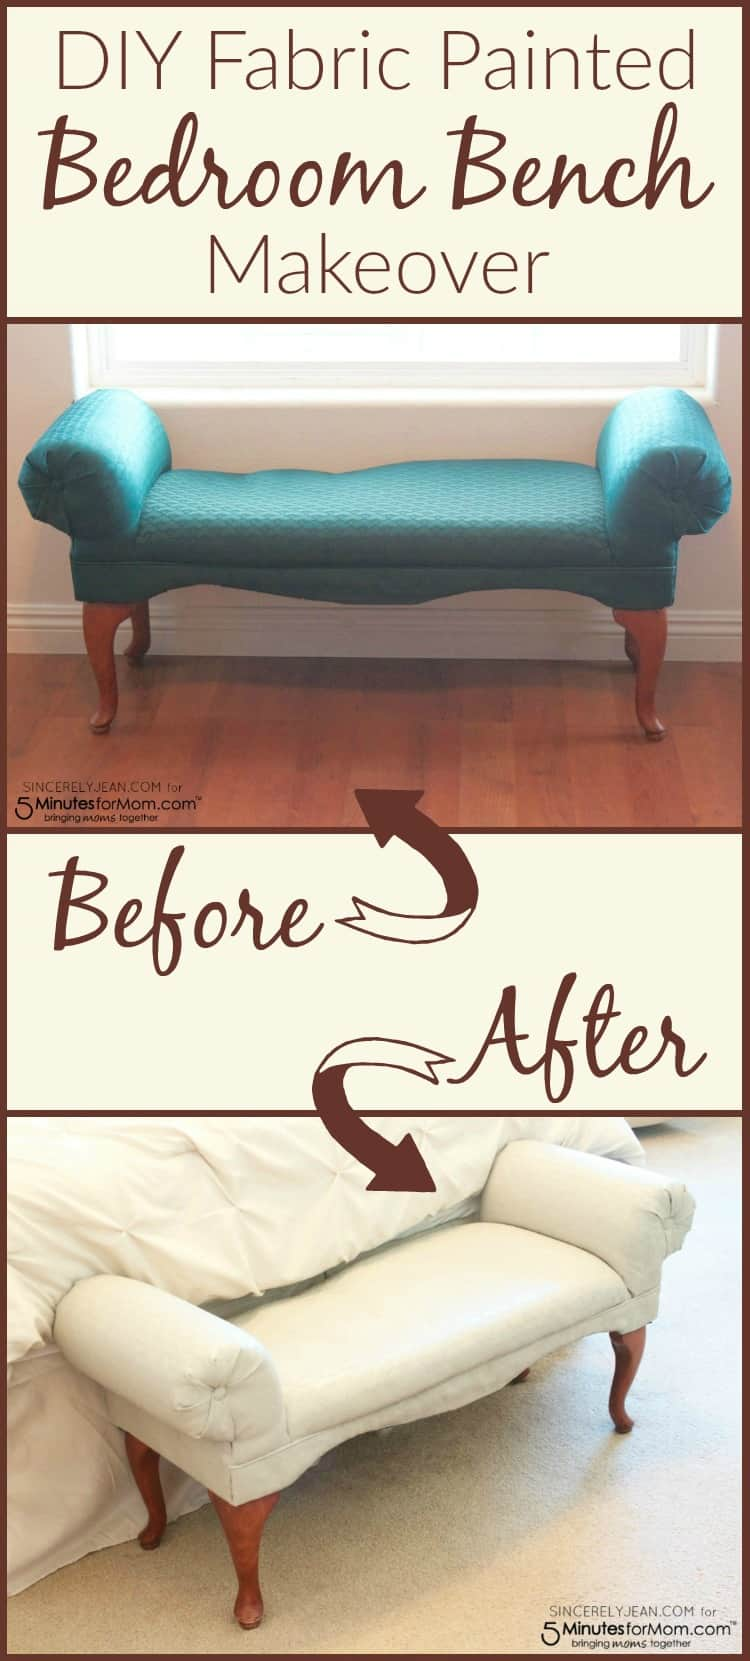 DIY Fabric Painted Bedroom Bench Makeover